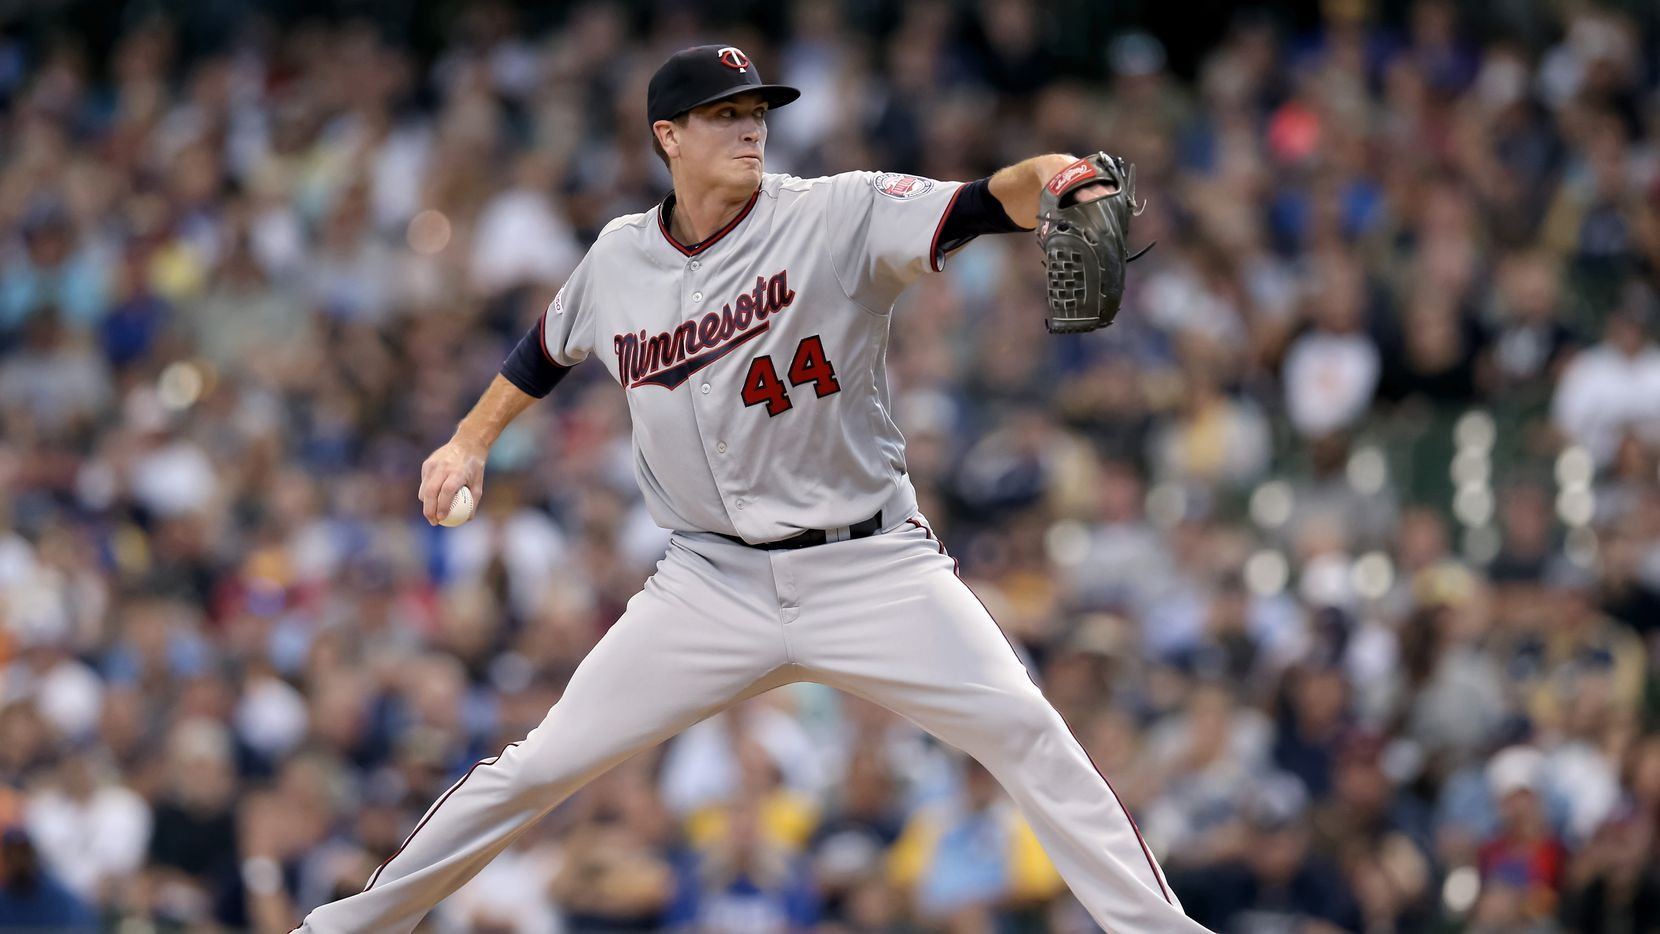 Kyle Gibson #44 of the Minnesota Twins pitches in the second inning against the Milwaukee Brewers at Miller Park on August 14, 2019 in Milwaukee, Wisconsin.